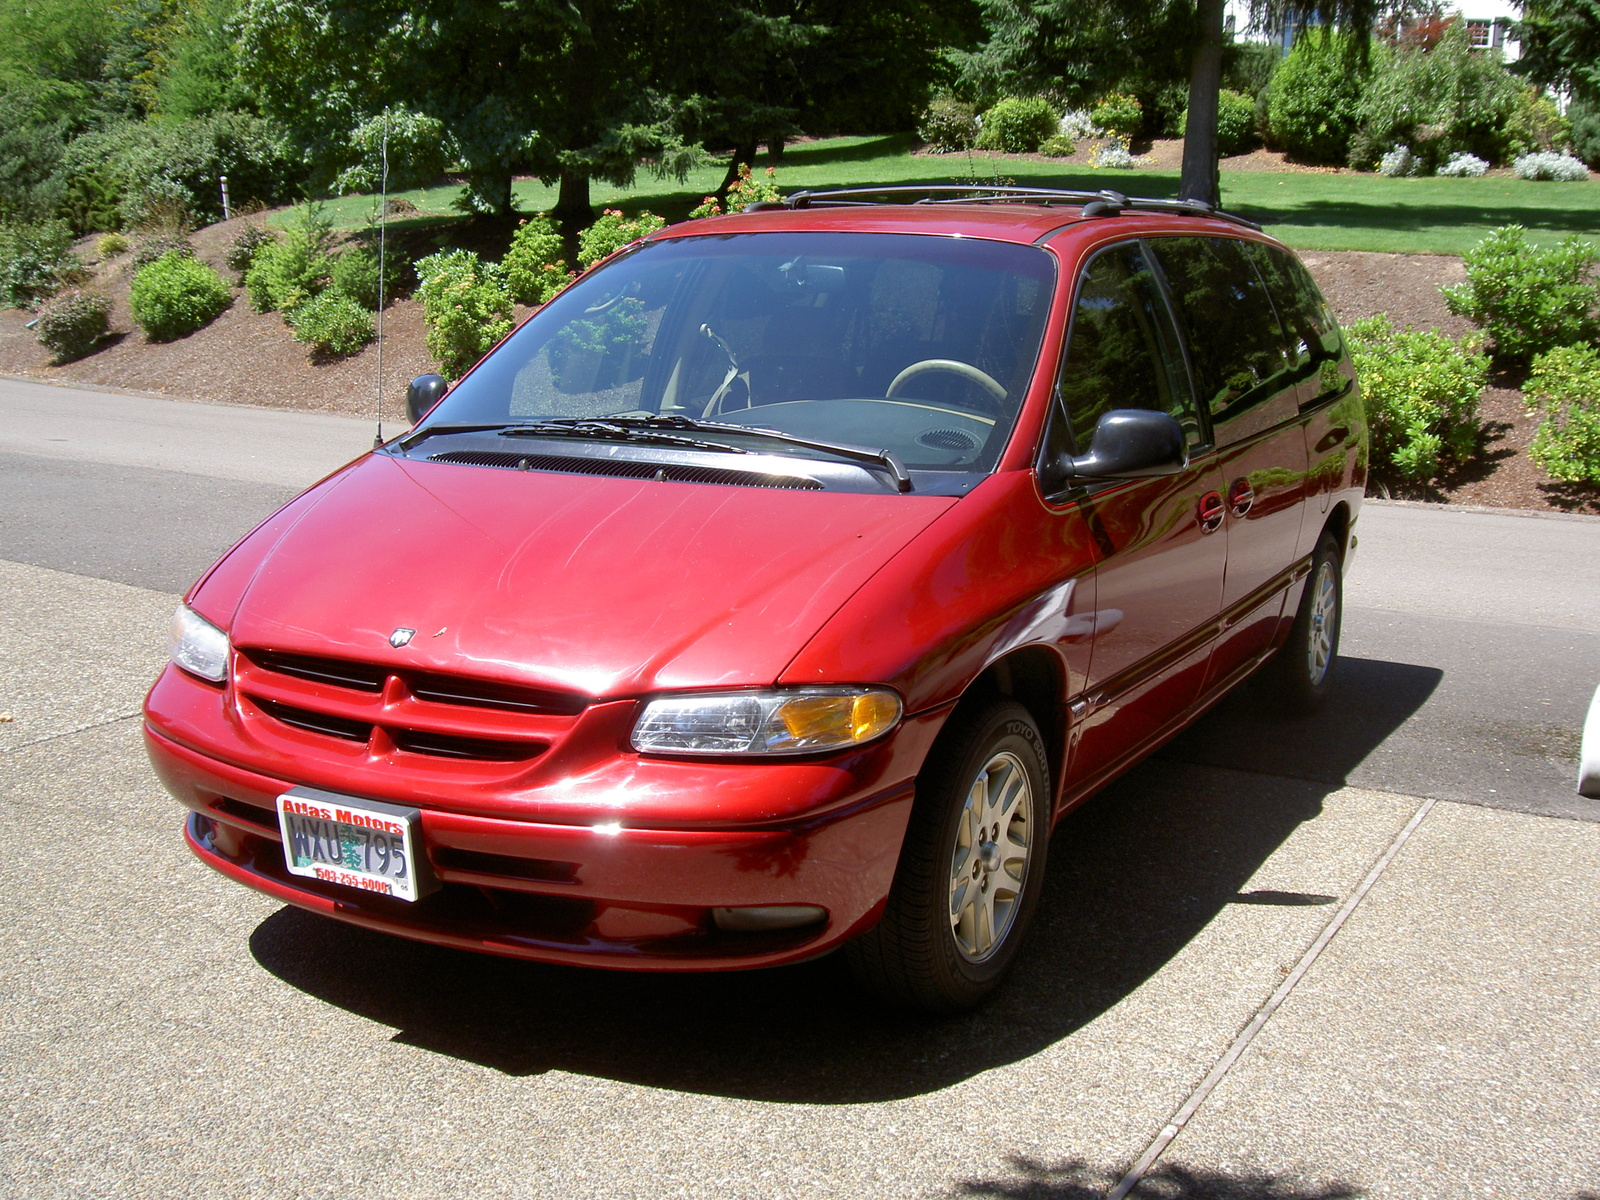 Picture of 2000 Dodge Grand Caravan 4 Dr ES Passenger Van Extended